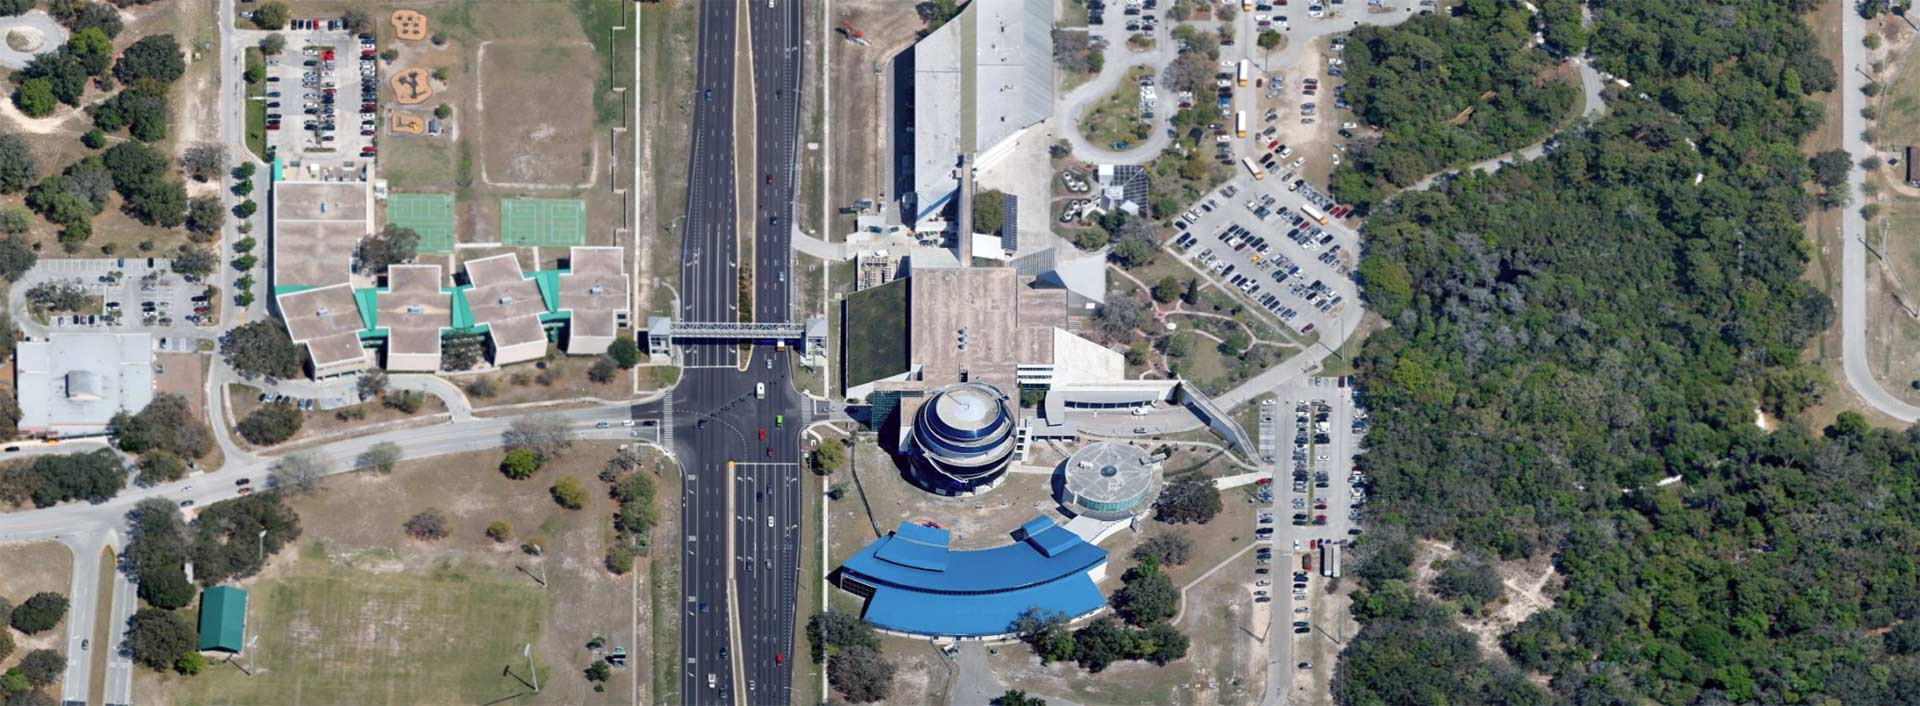 Aerial imagery of Tampa Museum of Science and Industry